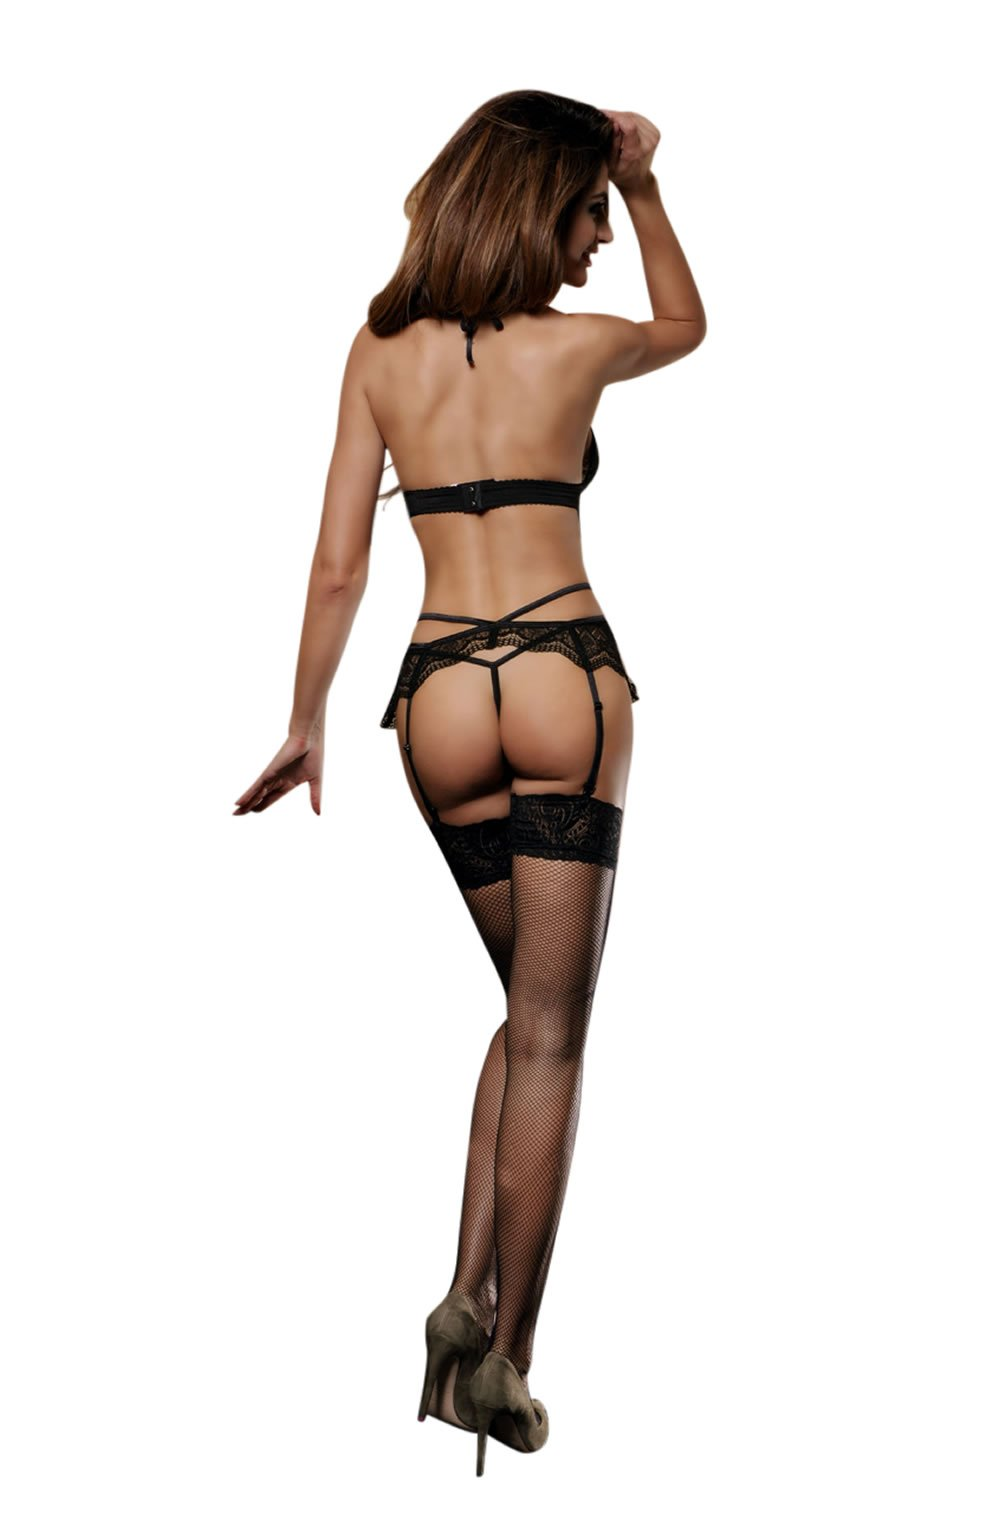 Yesx YX932 3pc Top pant & Stockings Black/Rose - Black/Rose